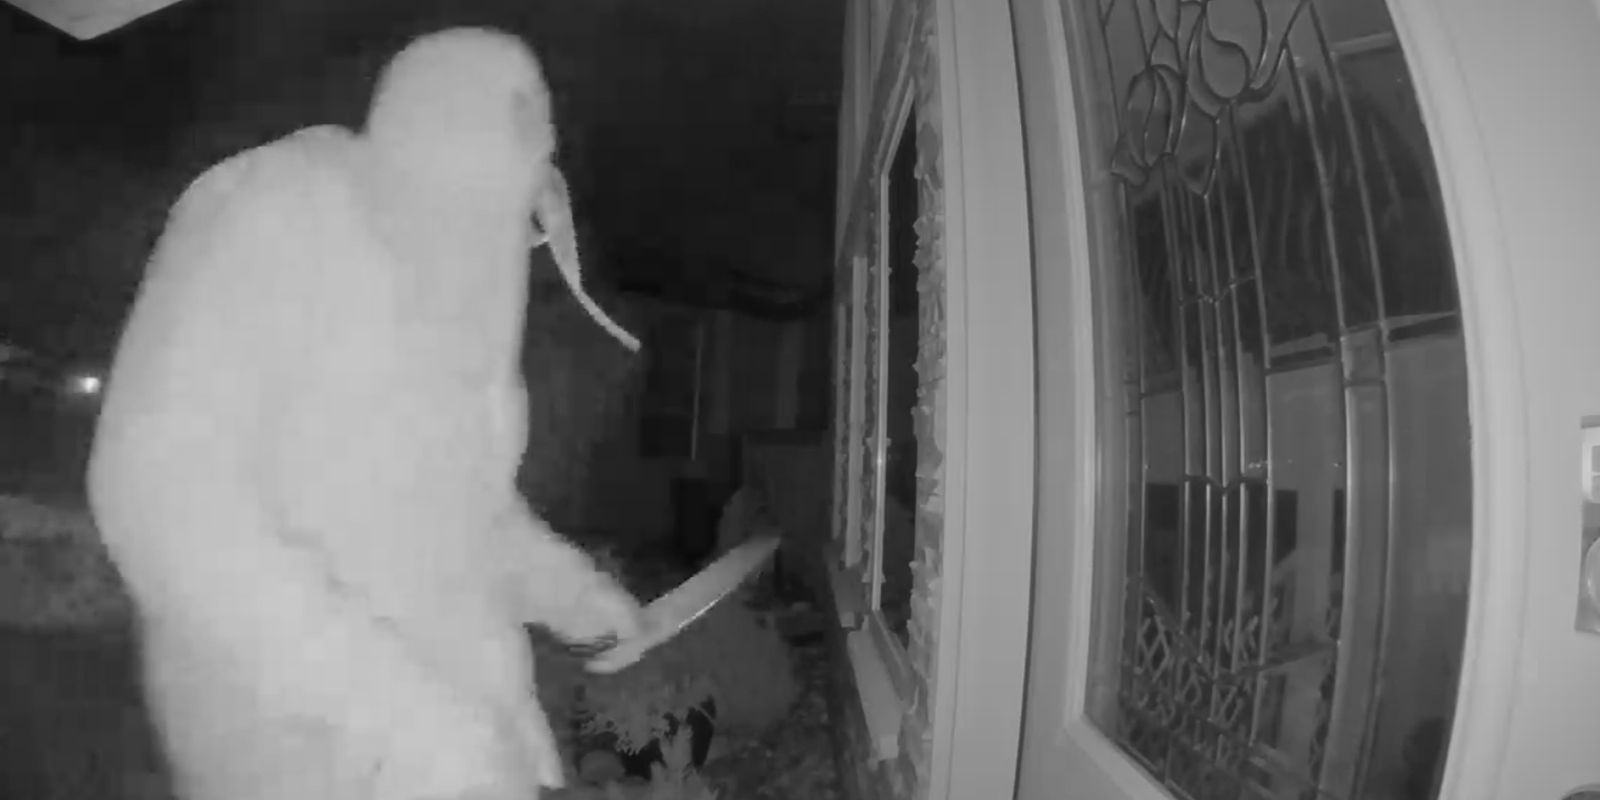 VIDEO: Man armed with butcher's knife stalks Alberta town at night and breaks into homes